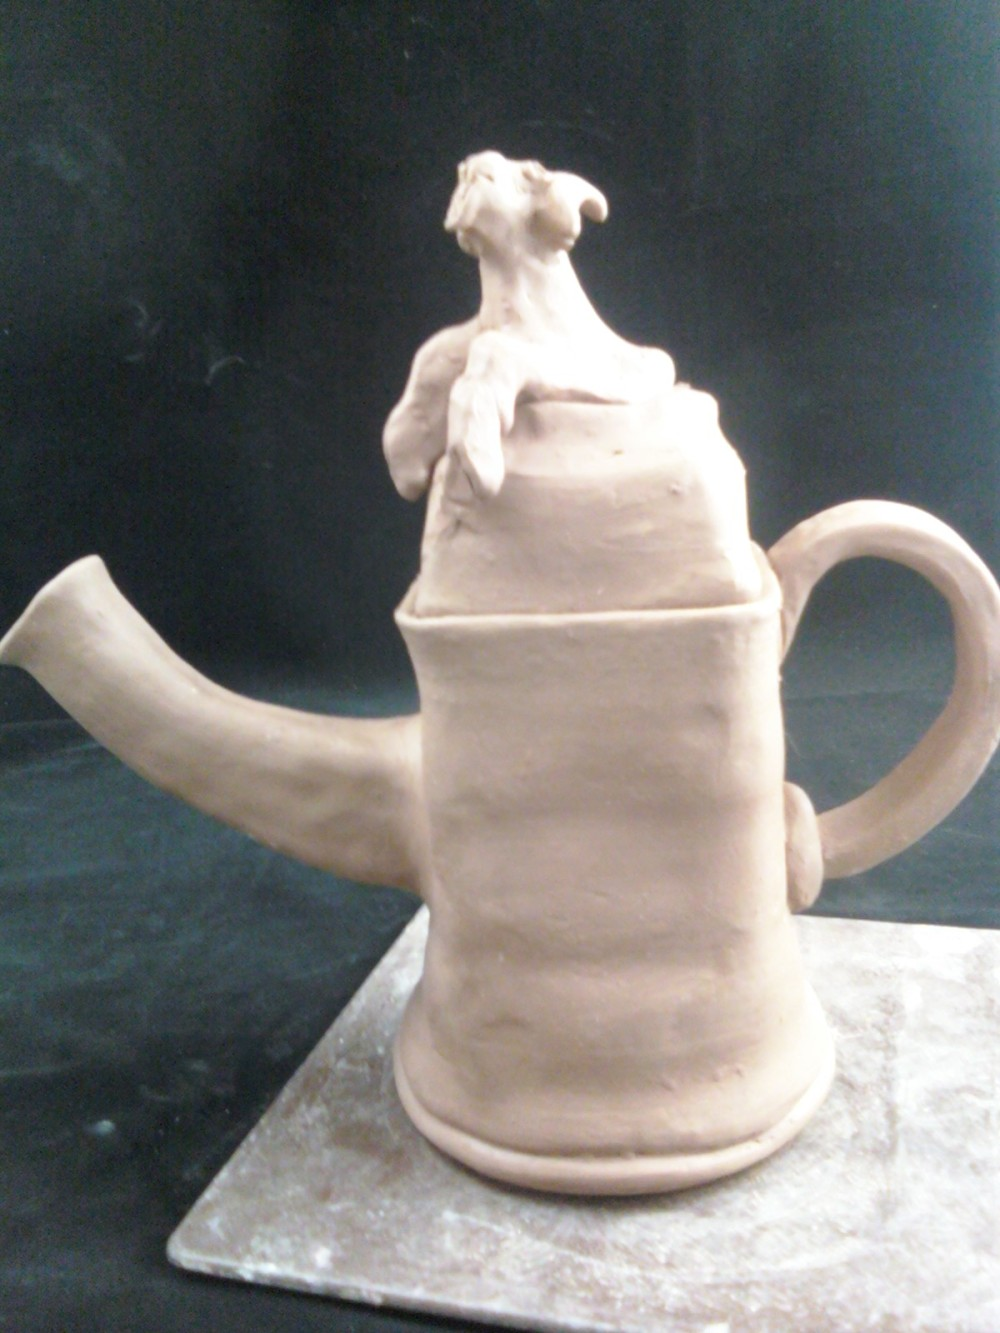 Beth's first teapot